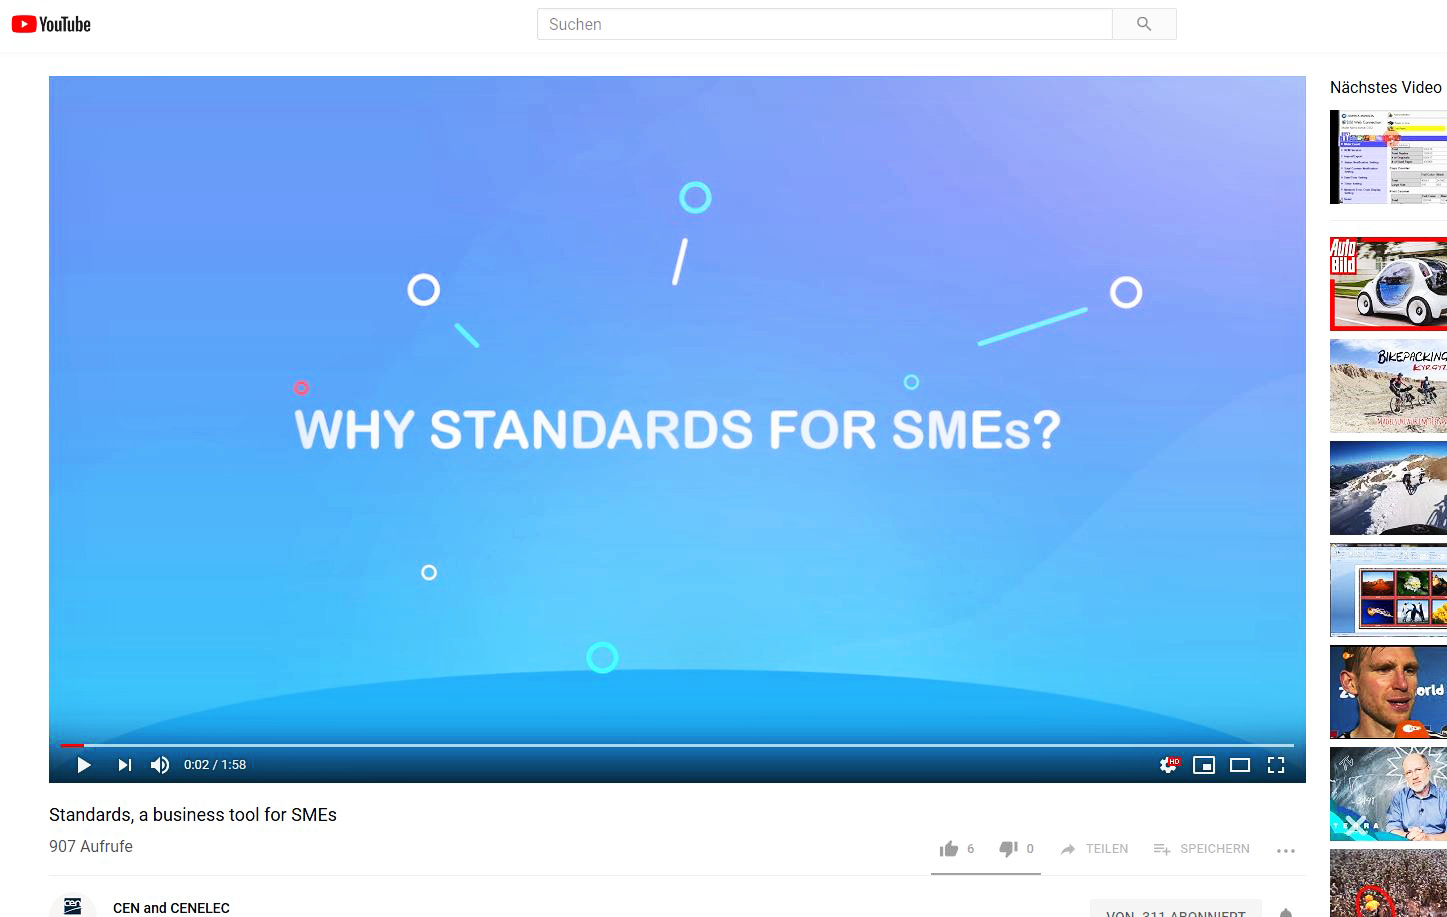 Standards for SMEs - Youtube Video